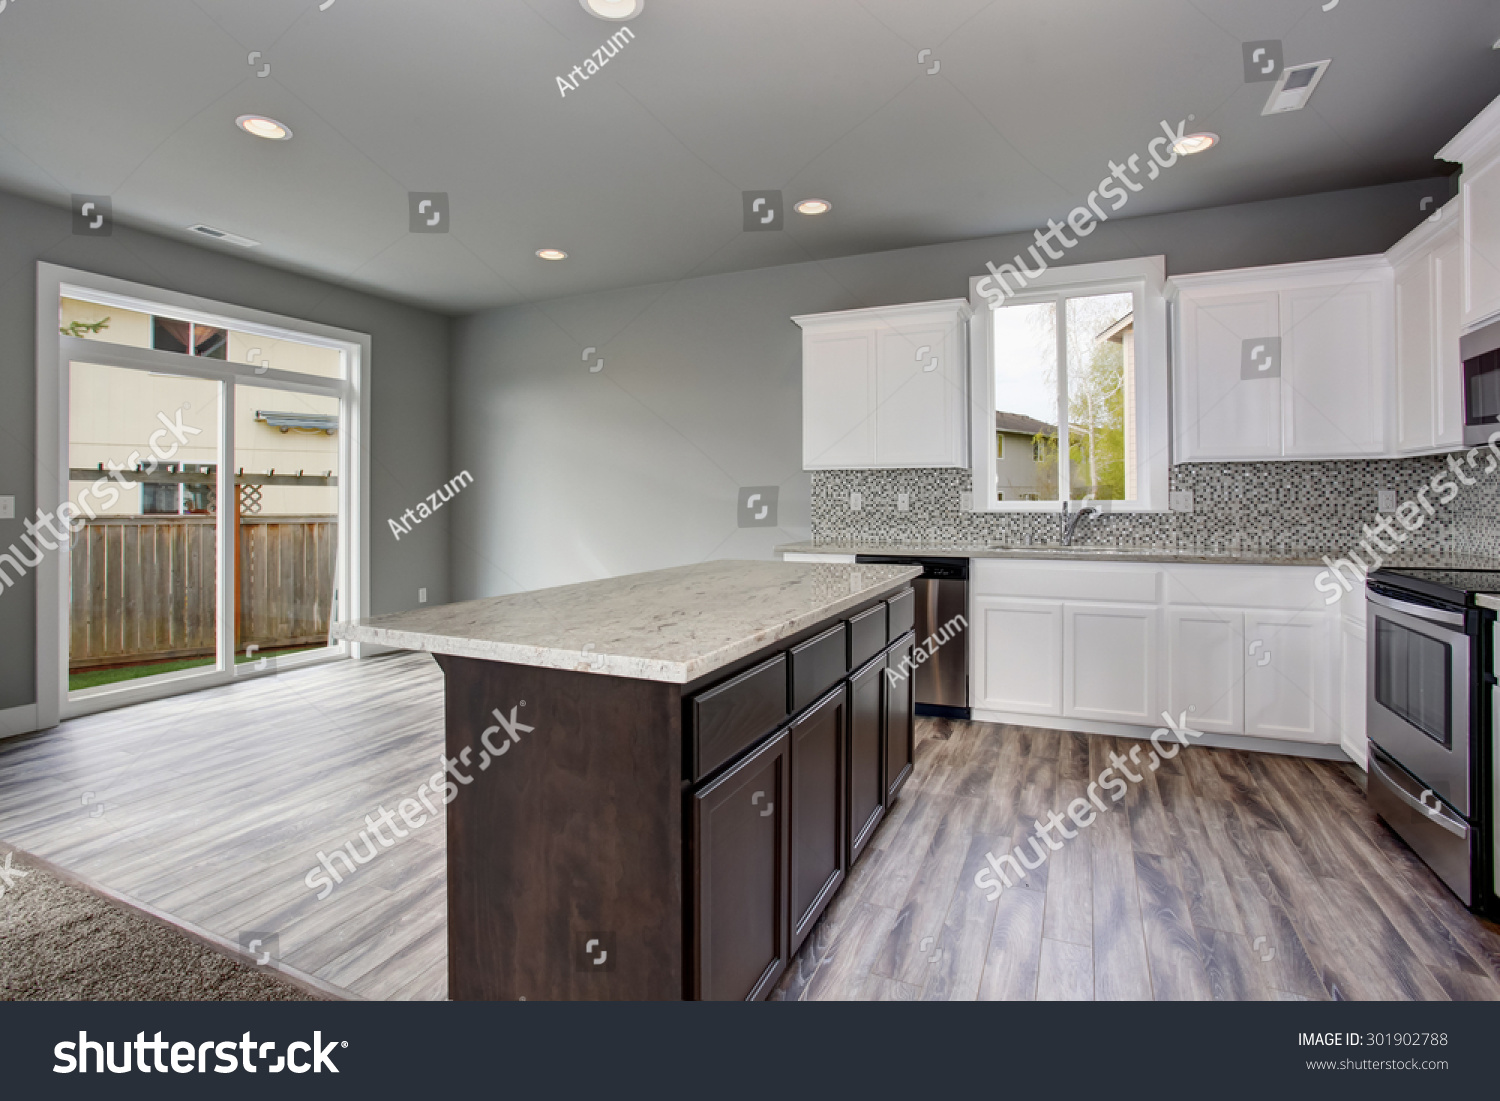 Gray Walls And White Cabinets Kitchen White Kitchen Cabinets And Gray Walls Genuine Home Design